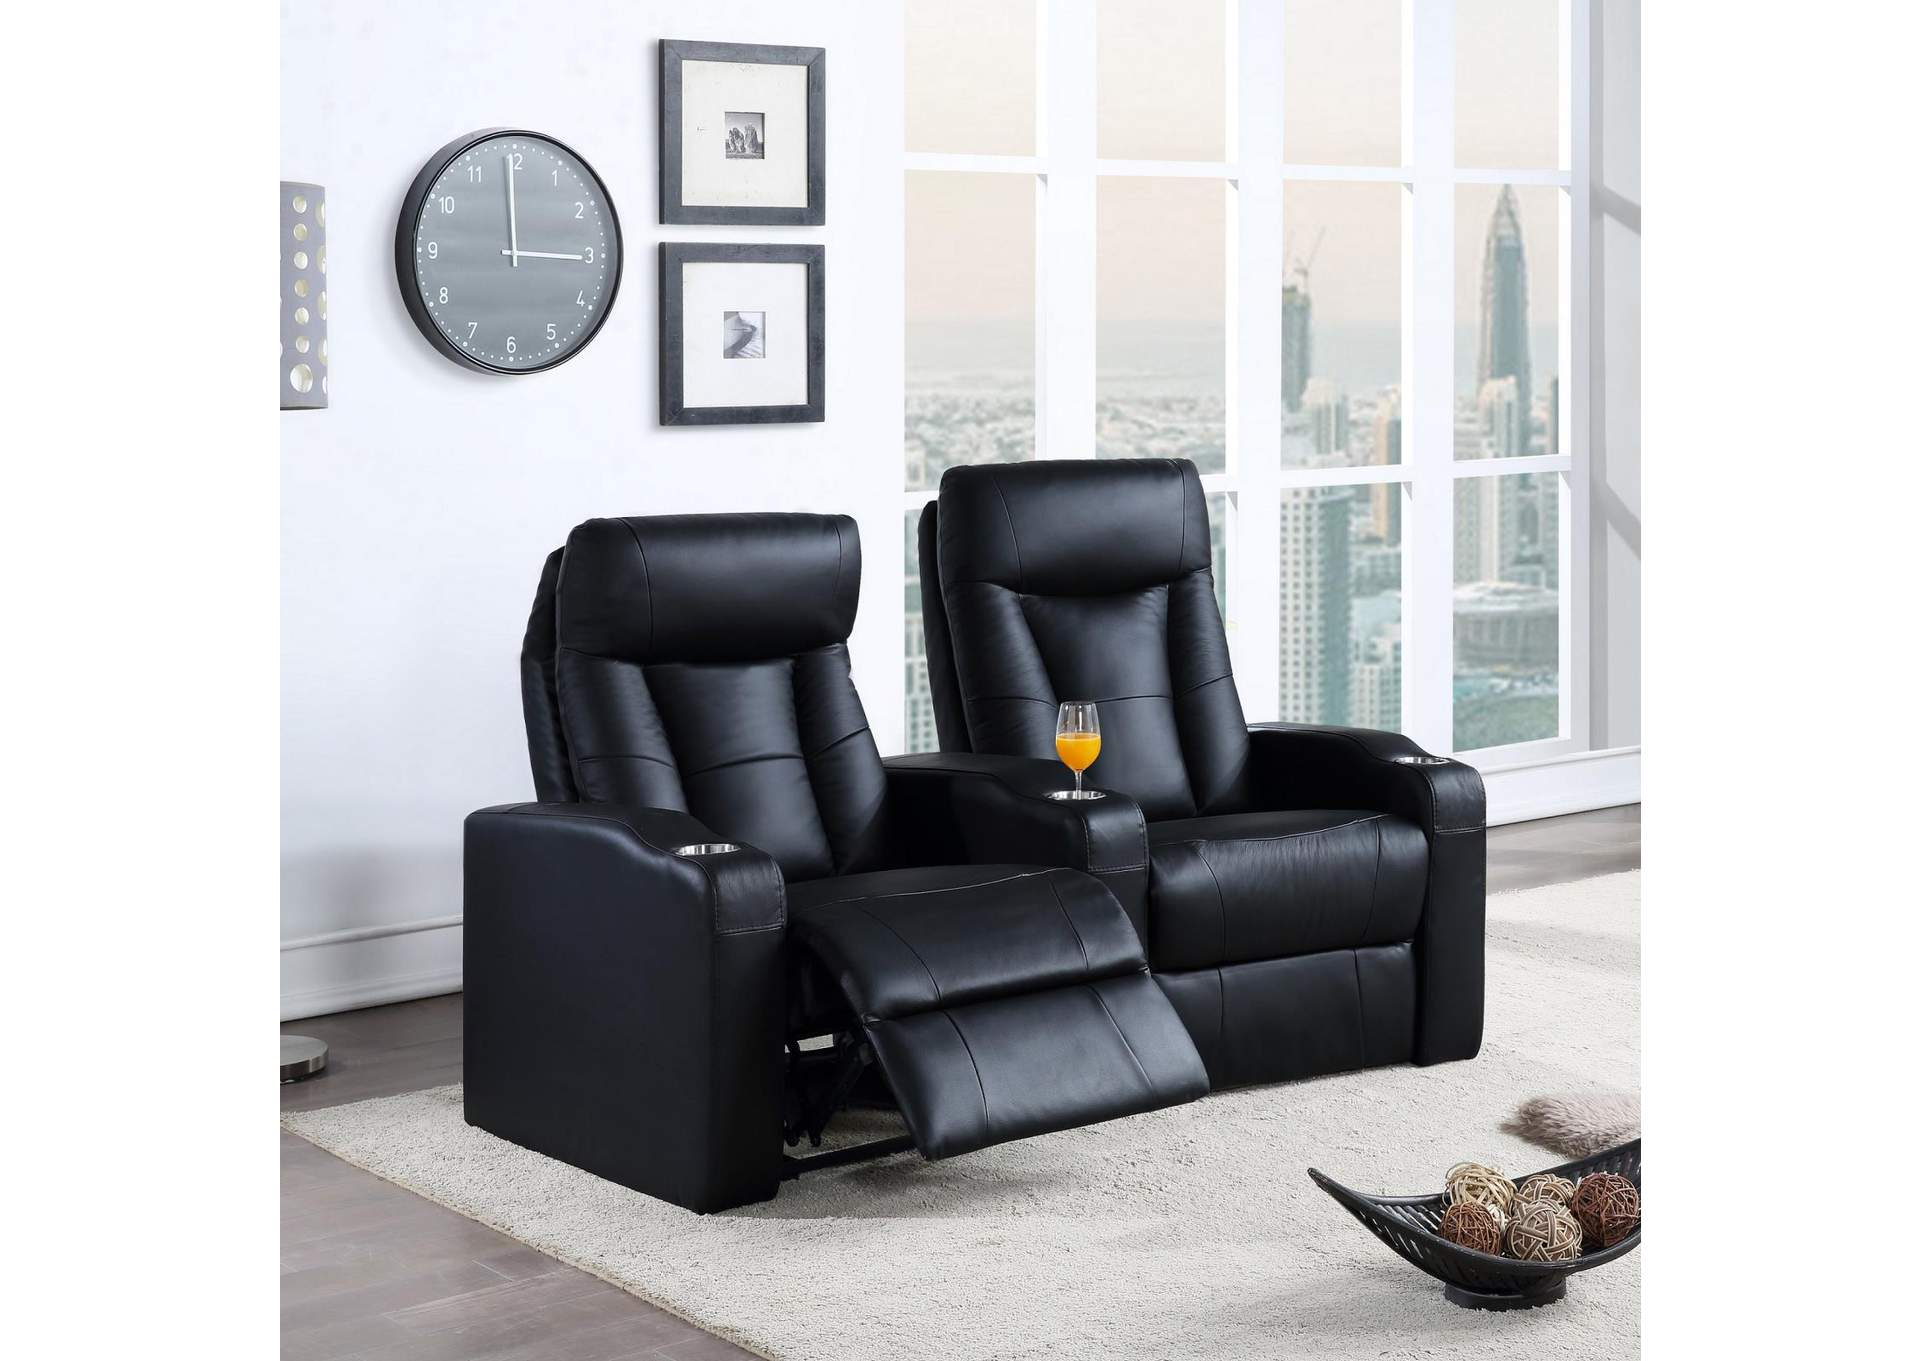 Pavillion Black Two-Seat Home Theater Seating,Coaster Furniture